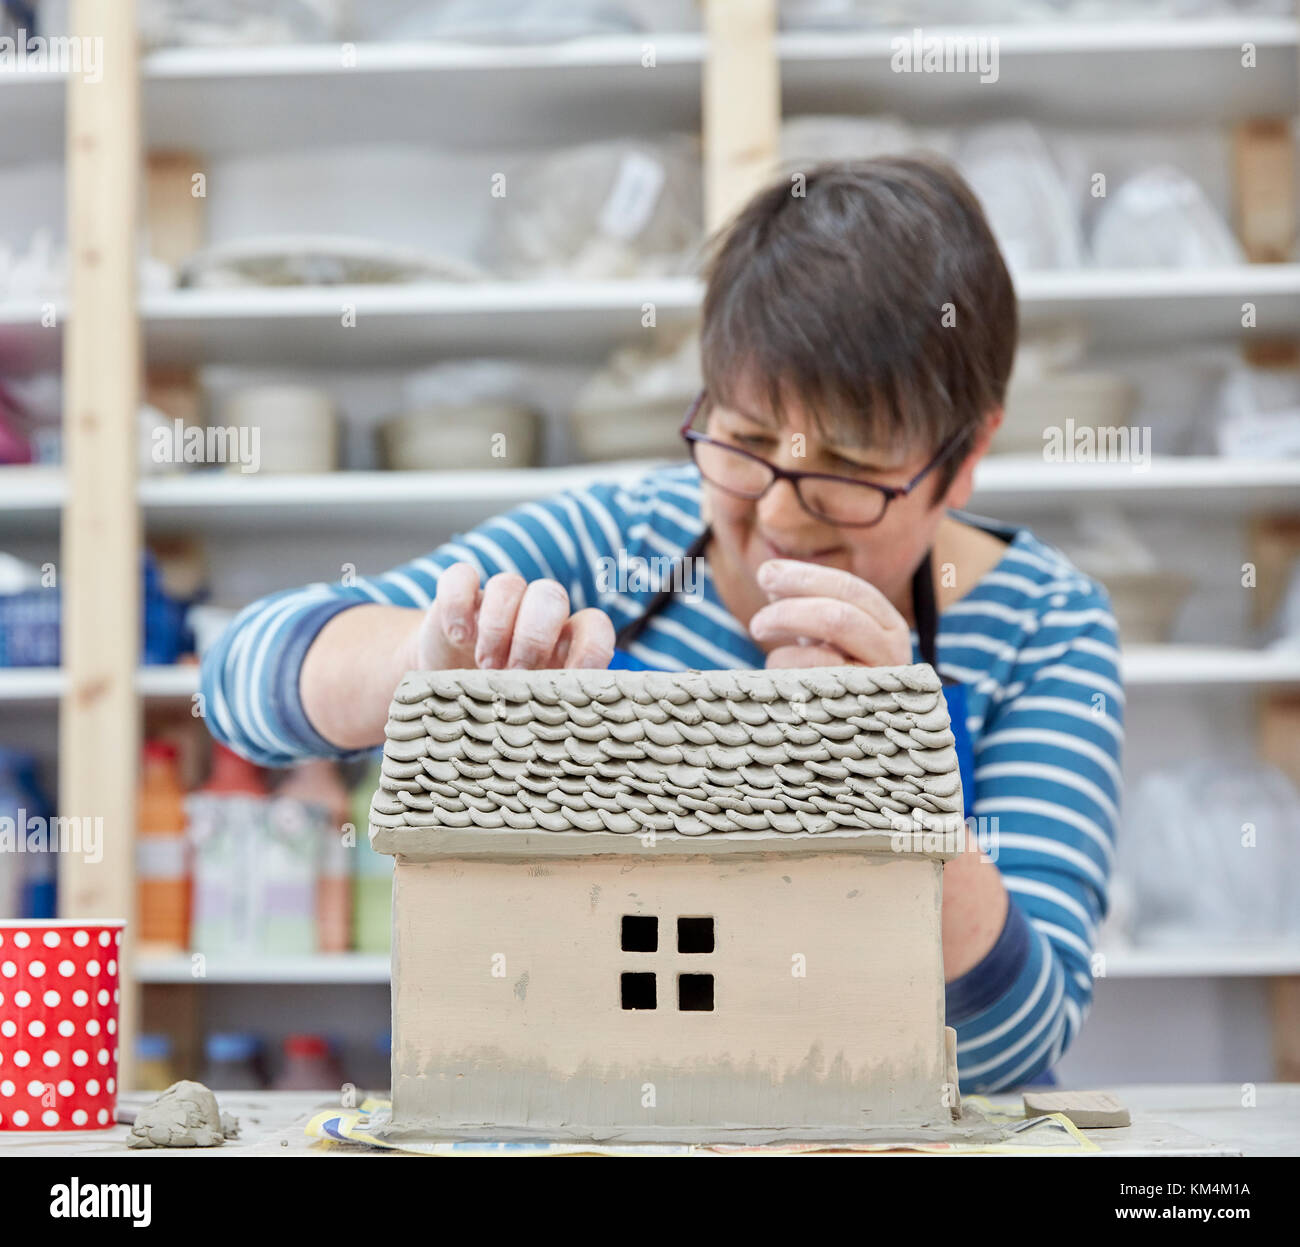 A woman potter using a small shaping tool to create the roof details for a clay model of a house. - Stock Image